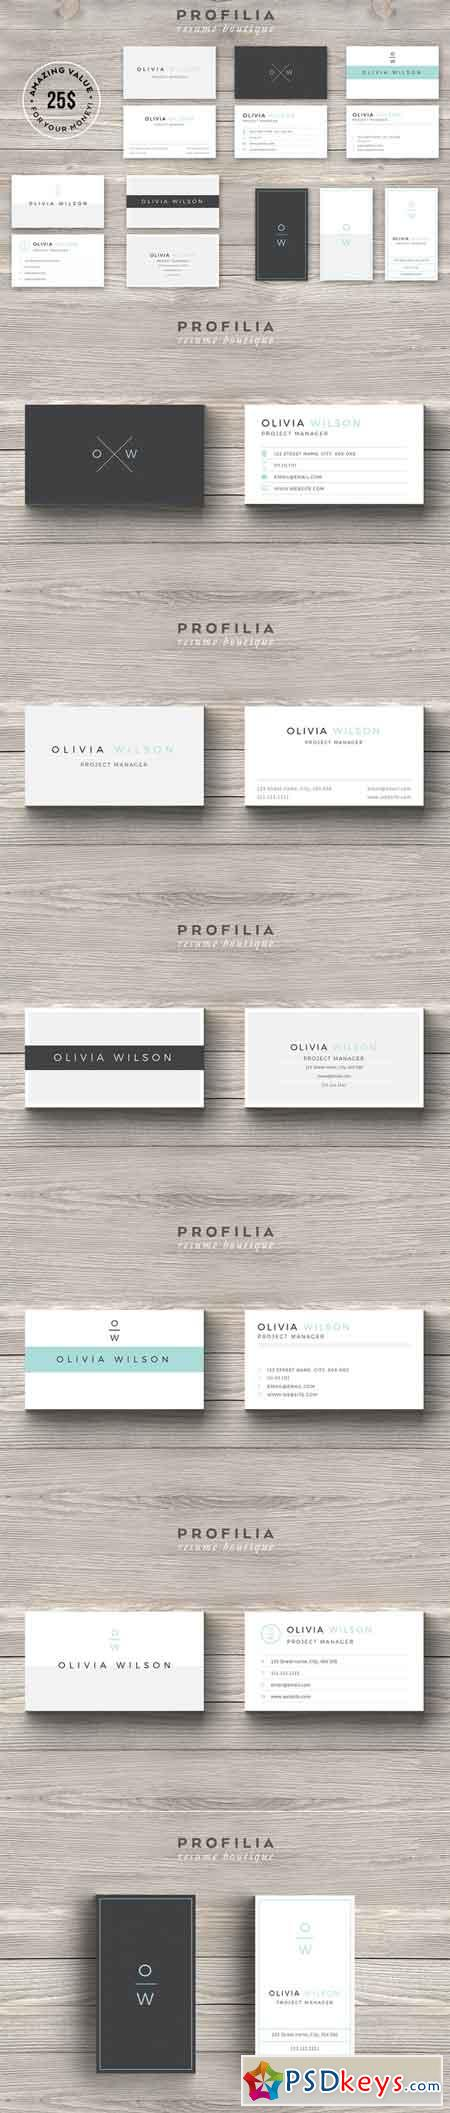 BUNDLE-Modern Business Card Template 660245